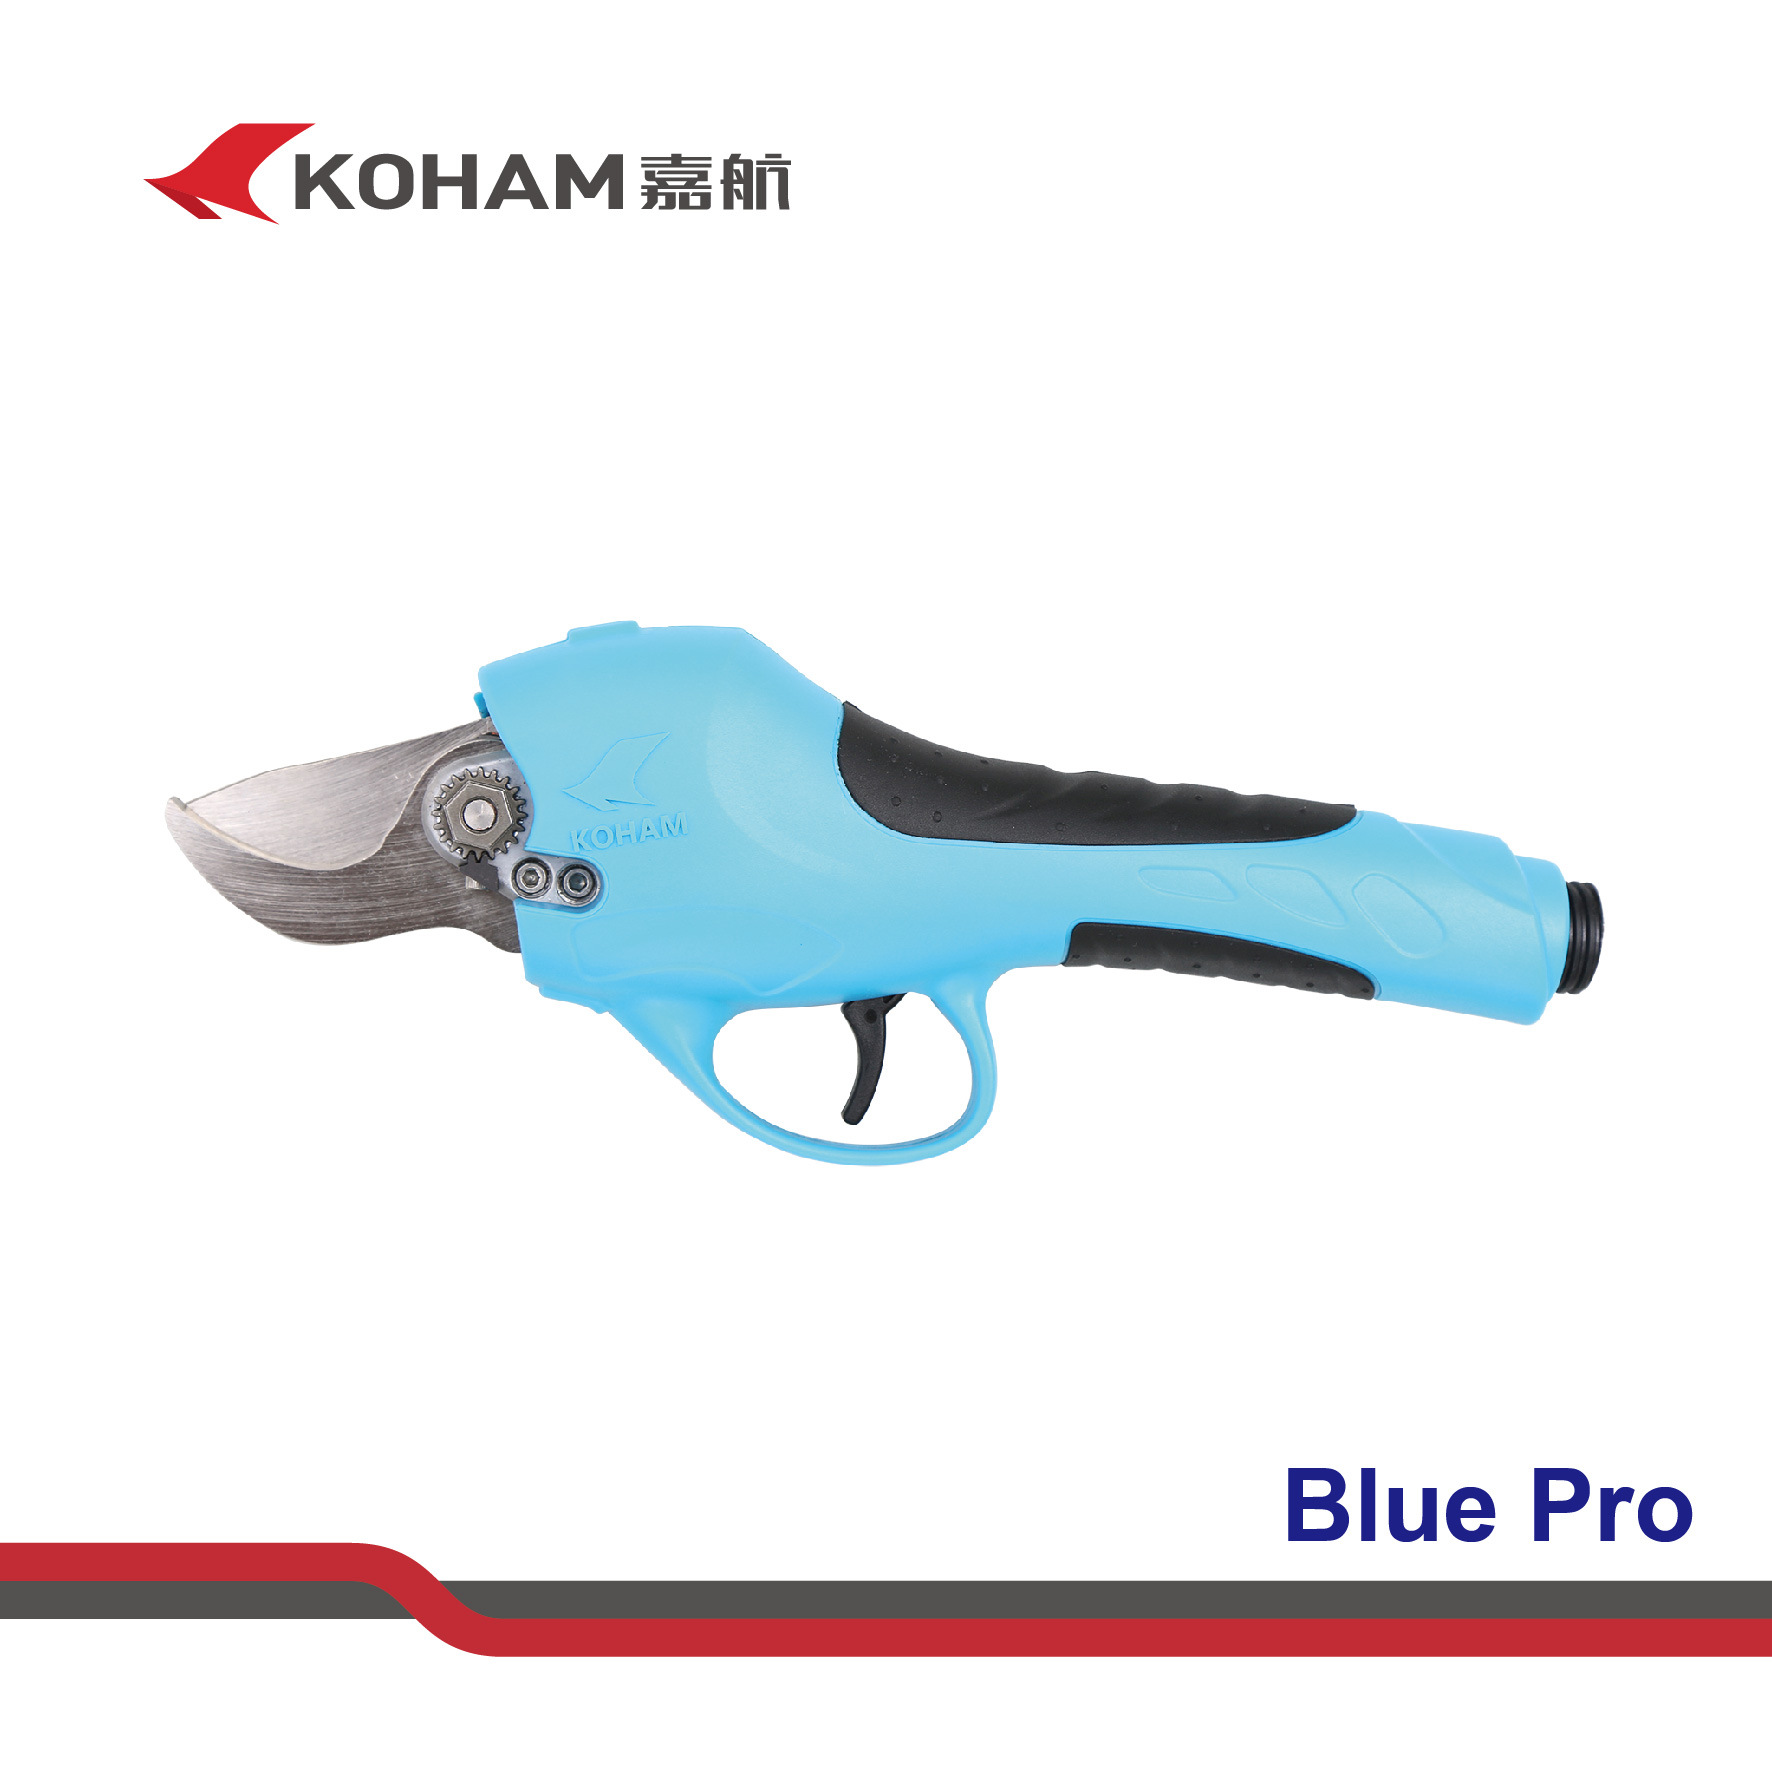 Koham Tools Plum Tree Branches Cutting Battery Secateurs